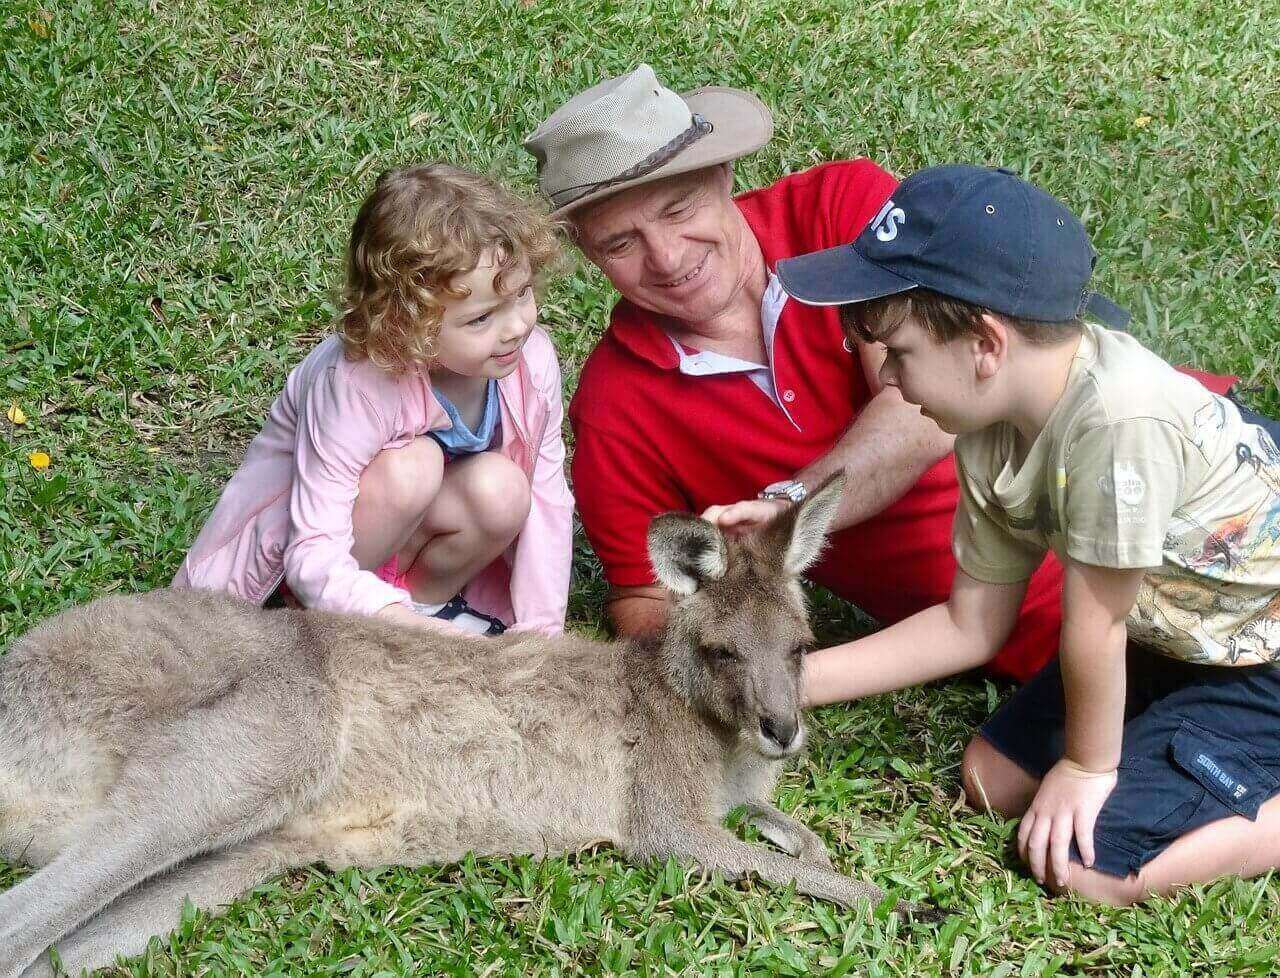 Family Visas: Australia Welcomes Family Members of Citizens & Residents